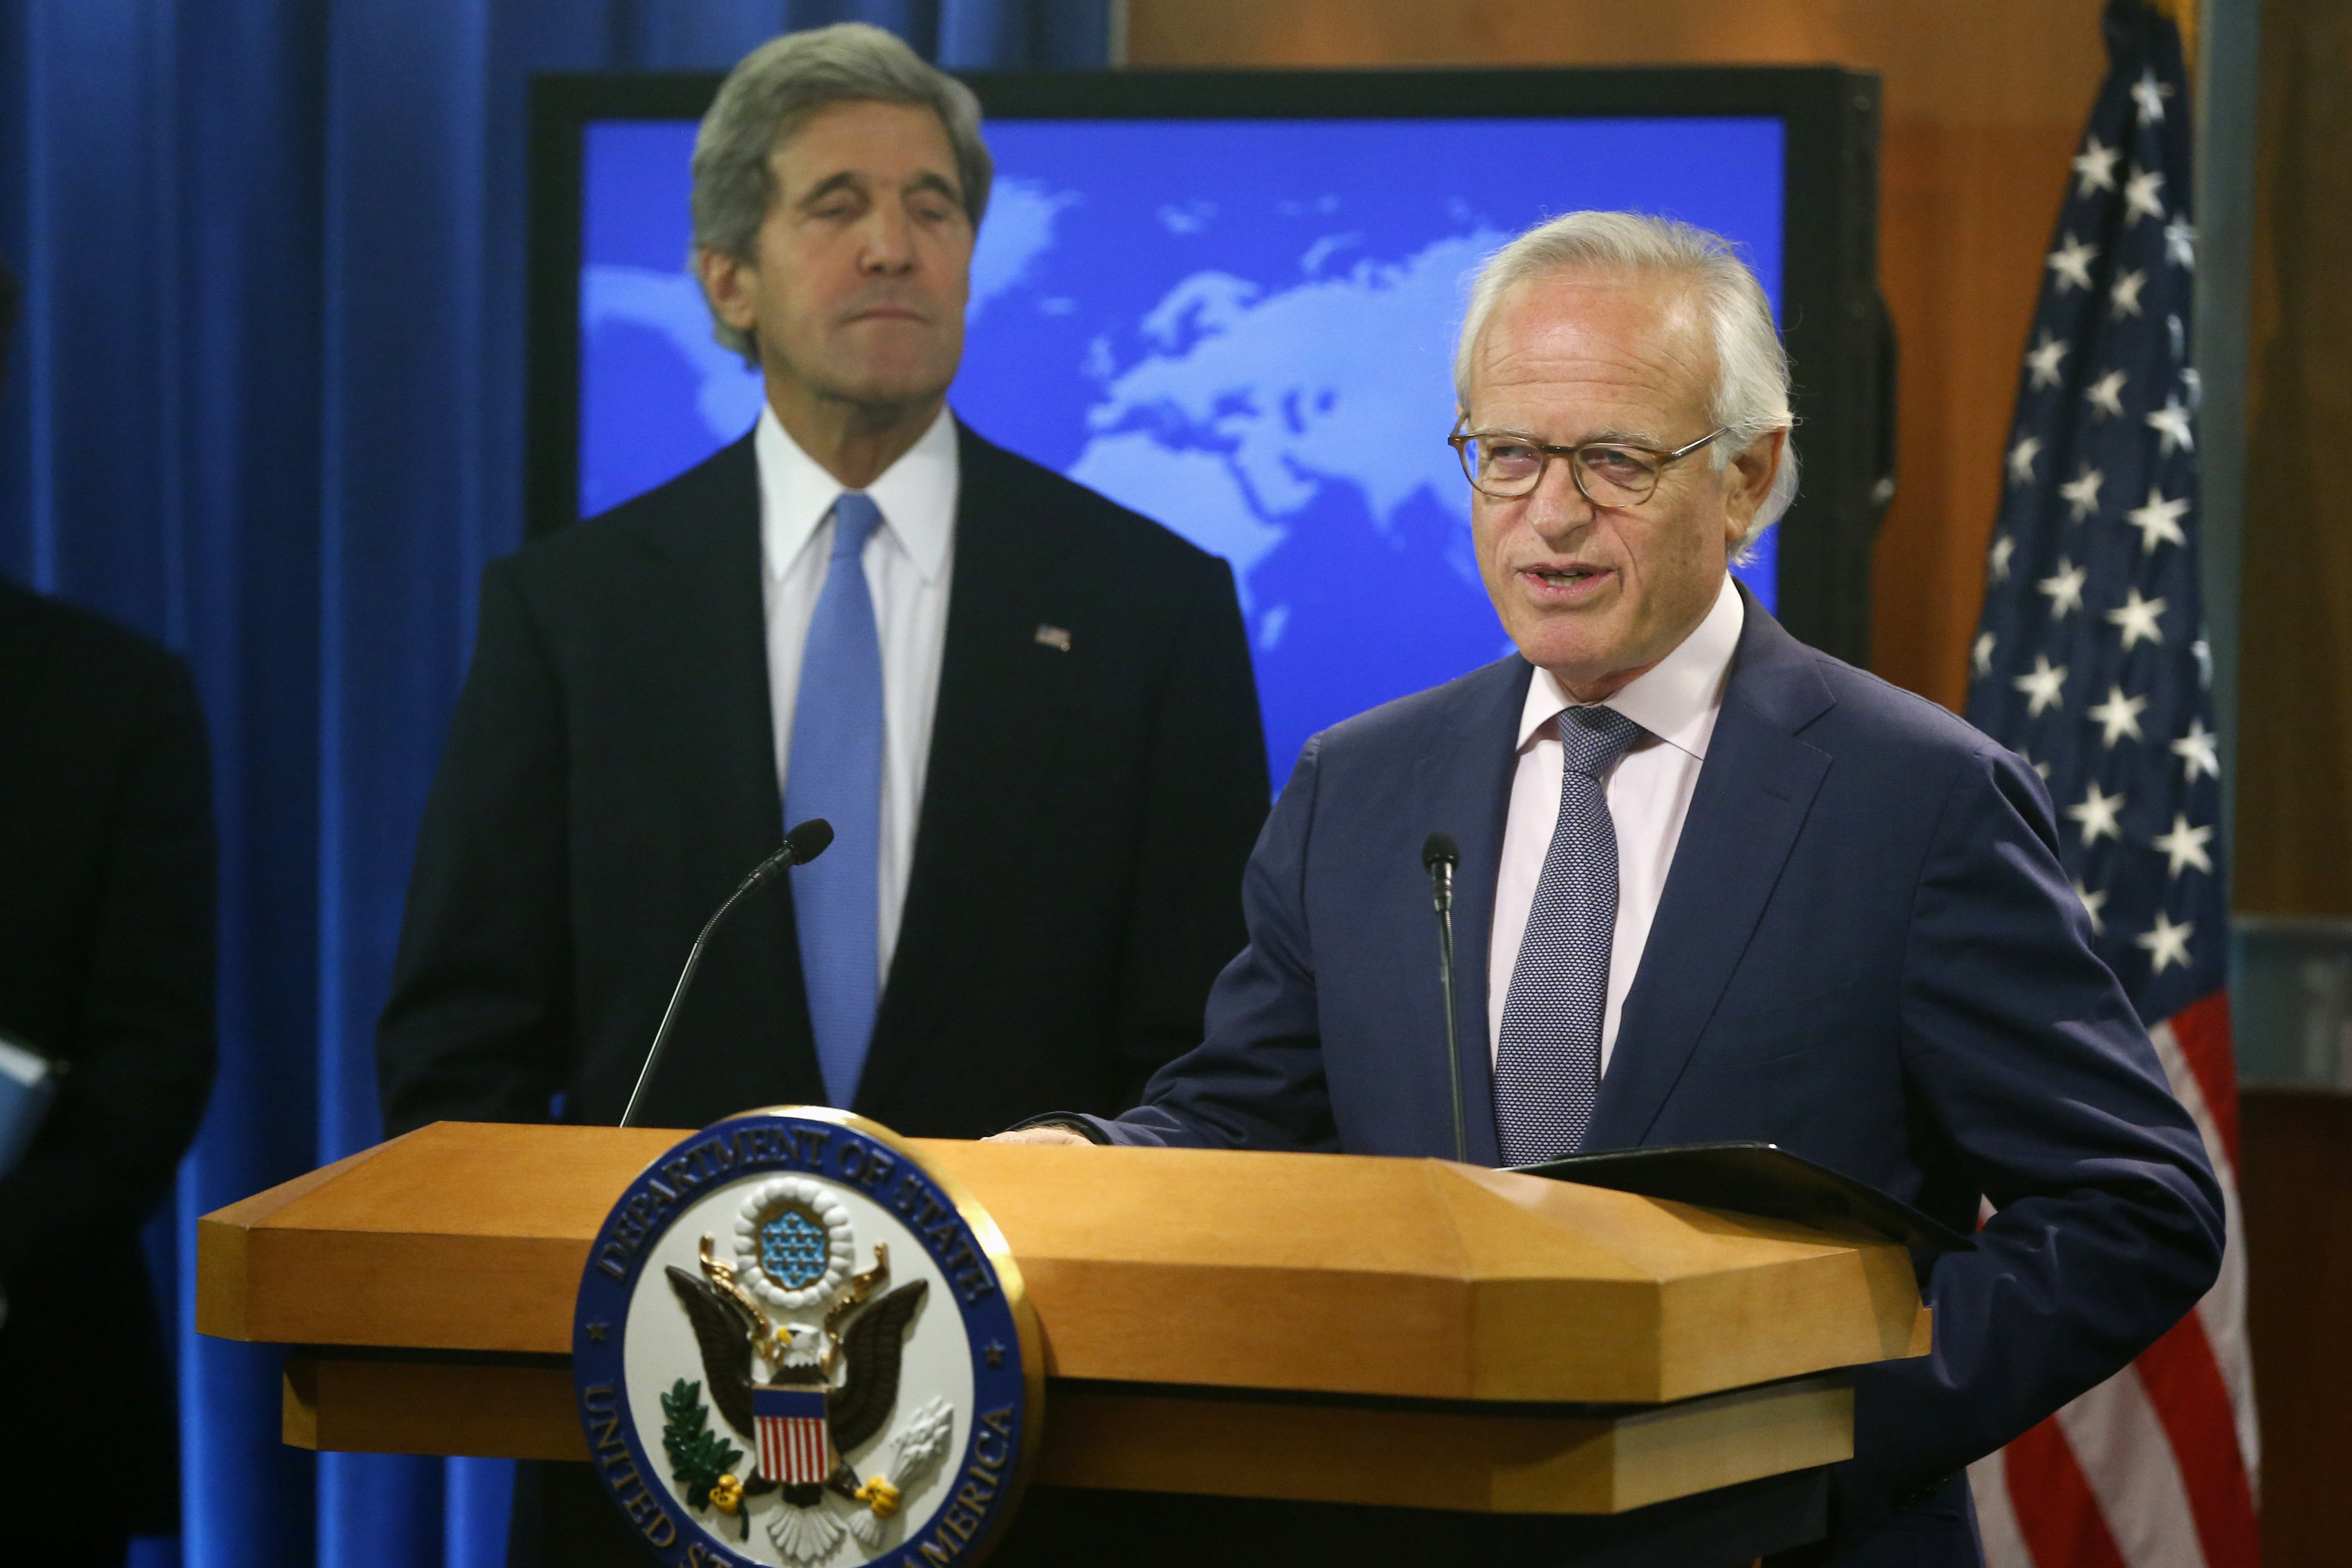 Secretary of State John Kerry listening as Martin Indyk speaks at the State Department in Washington D.C. on July 29, 2013.